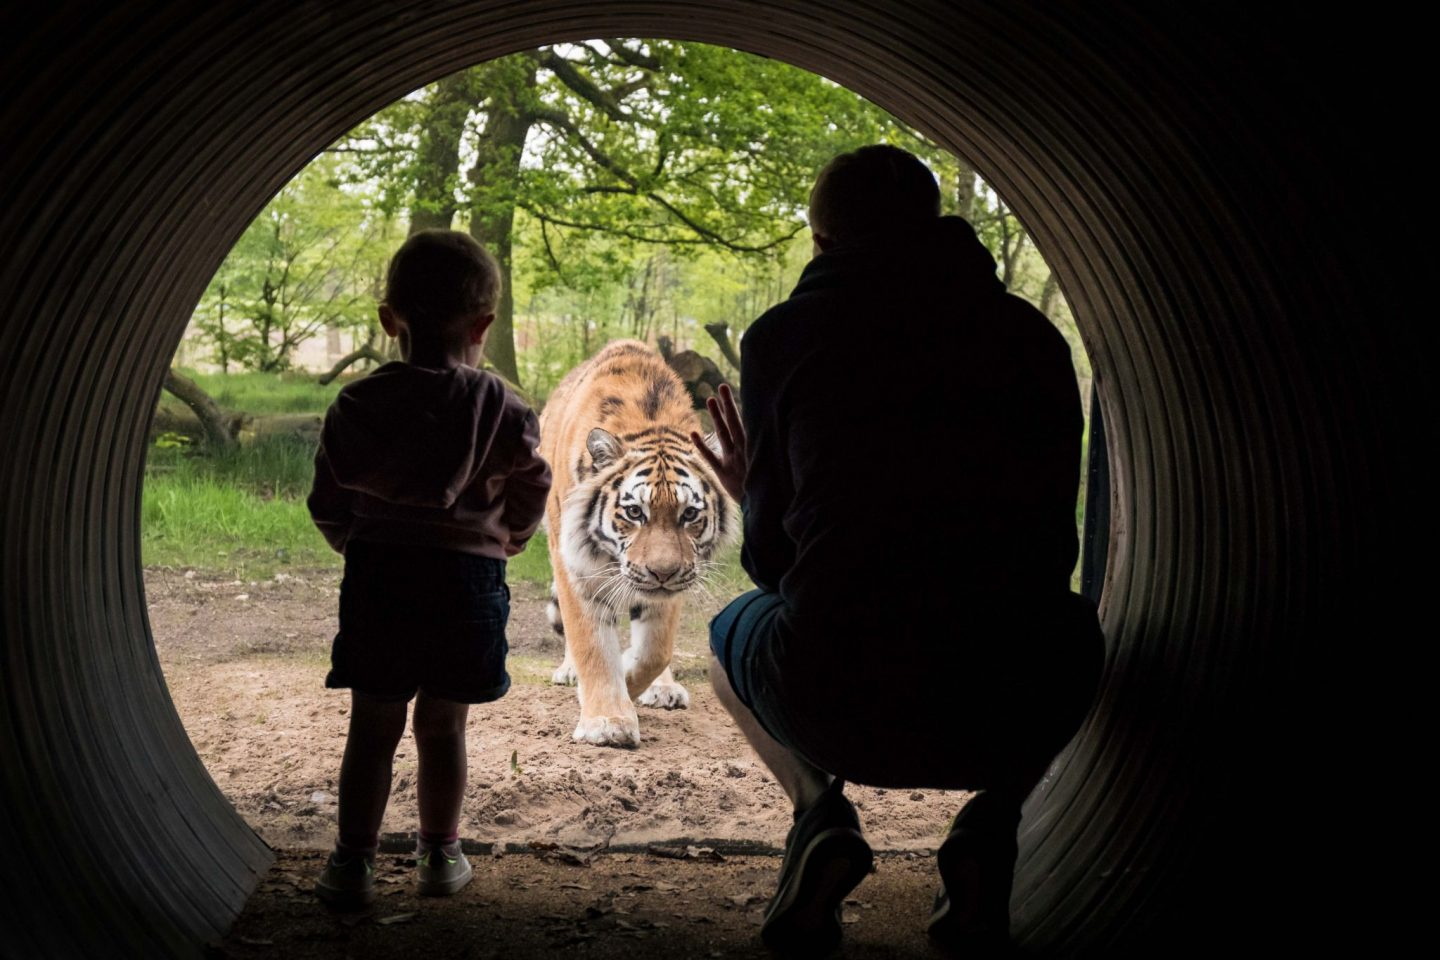 Knowsley-Safari-Park-Blogger-Review-Family-Day-Out-Tiger-Amur-Glass-View